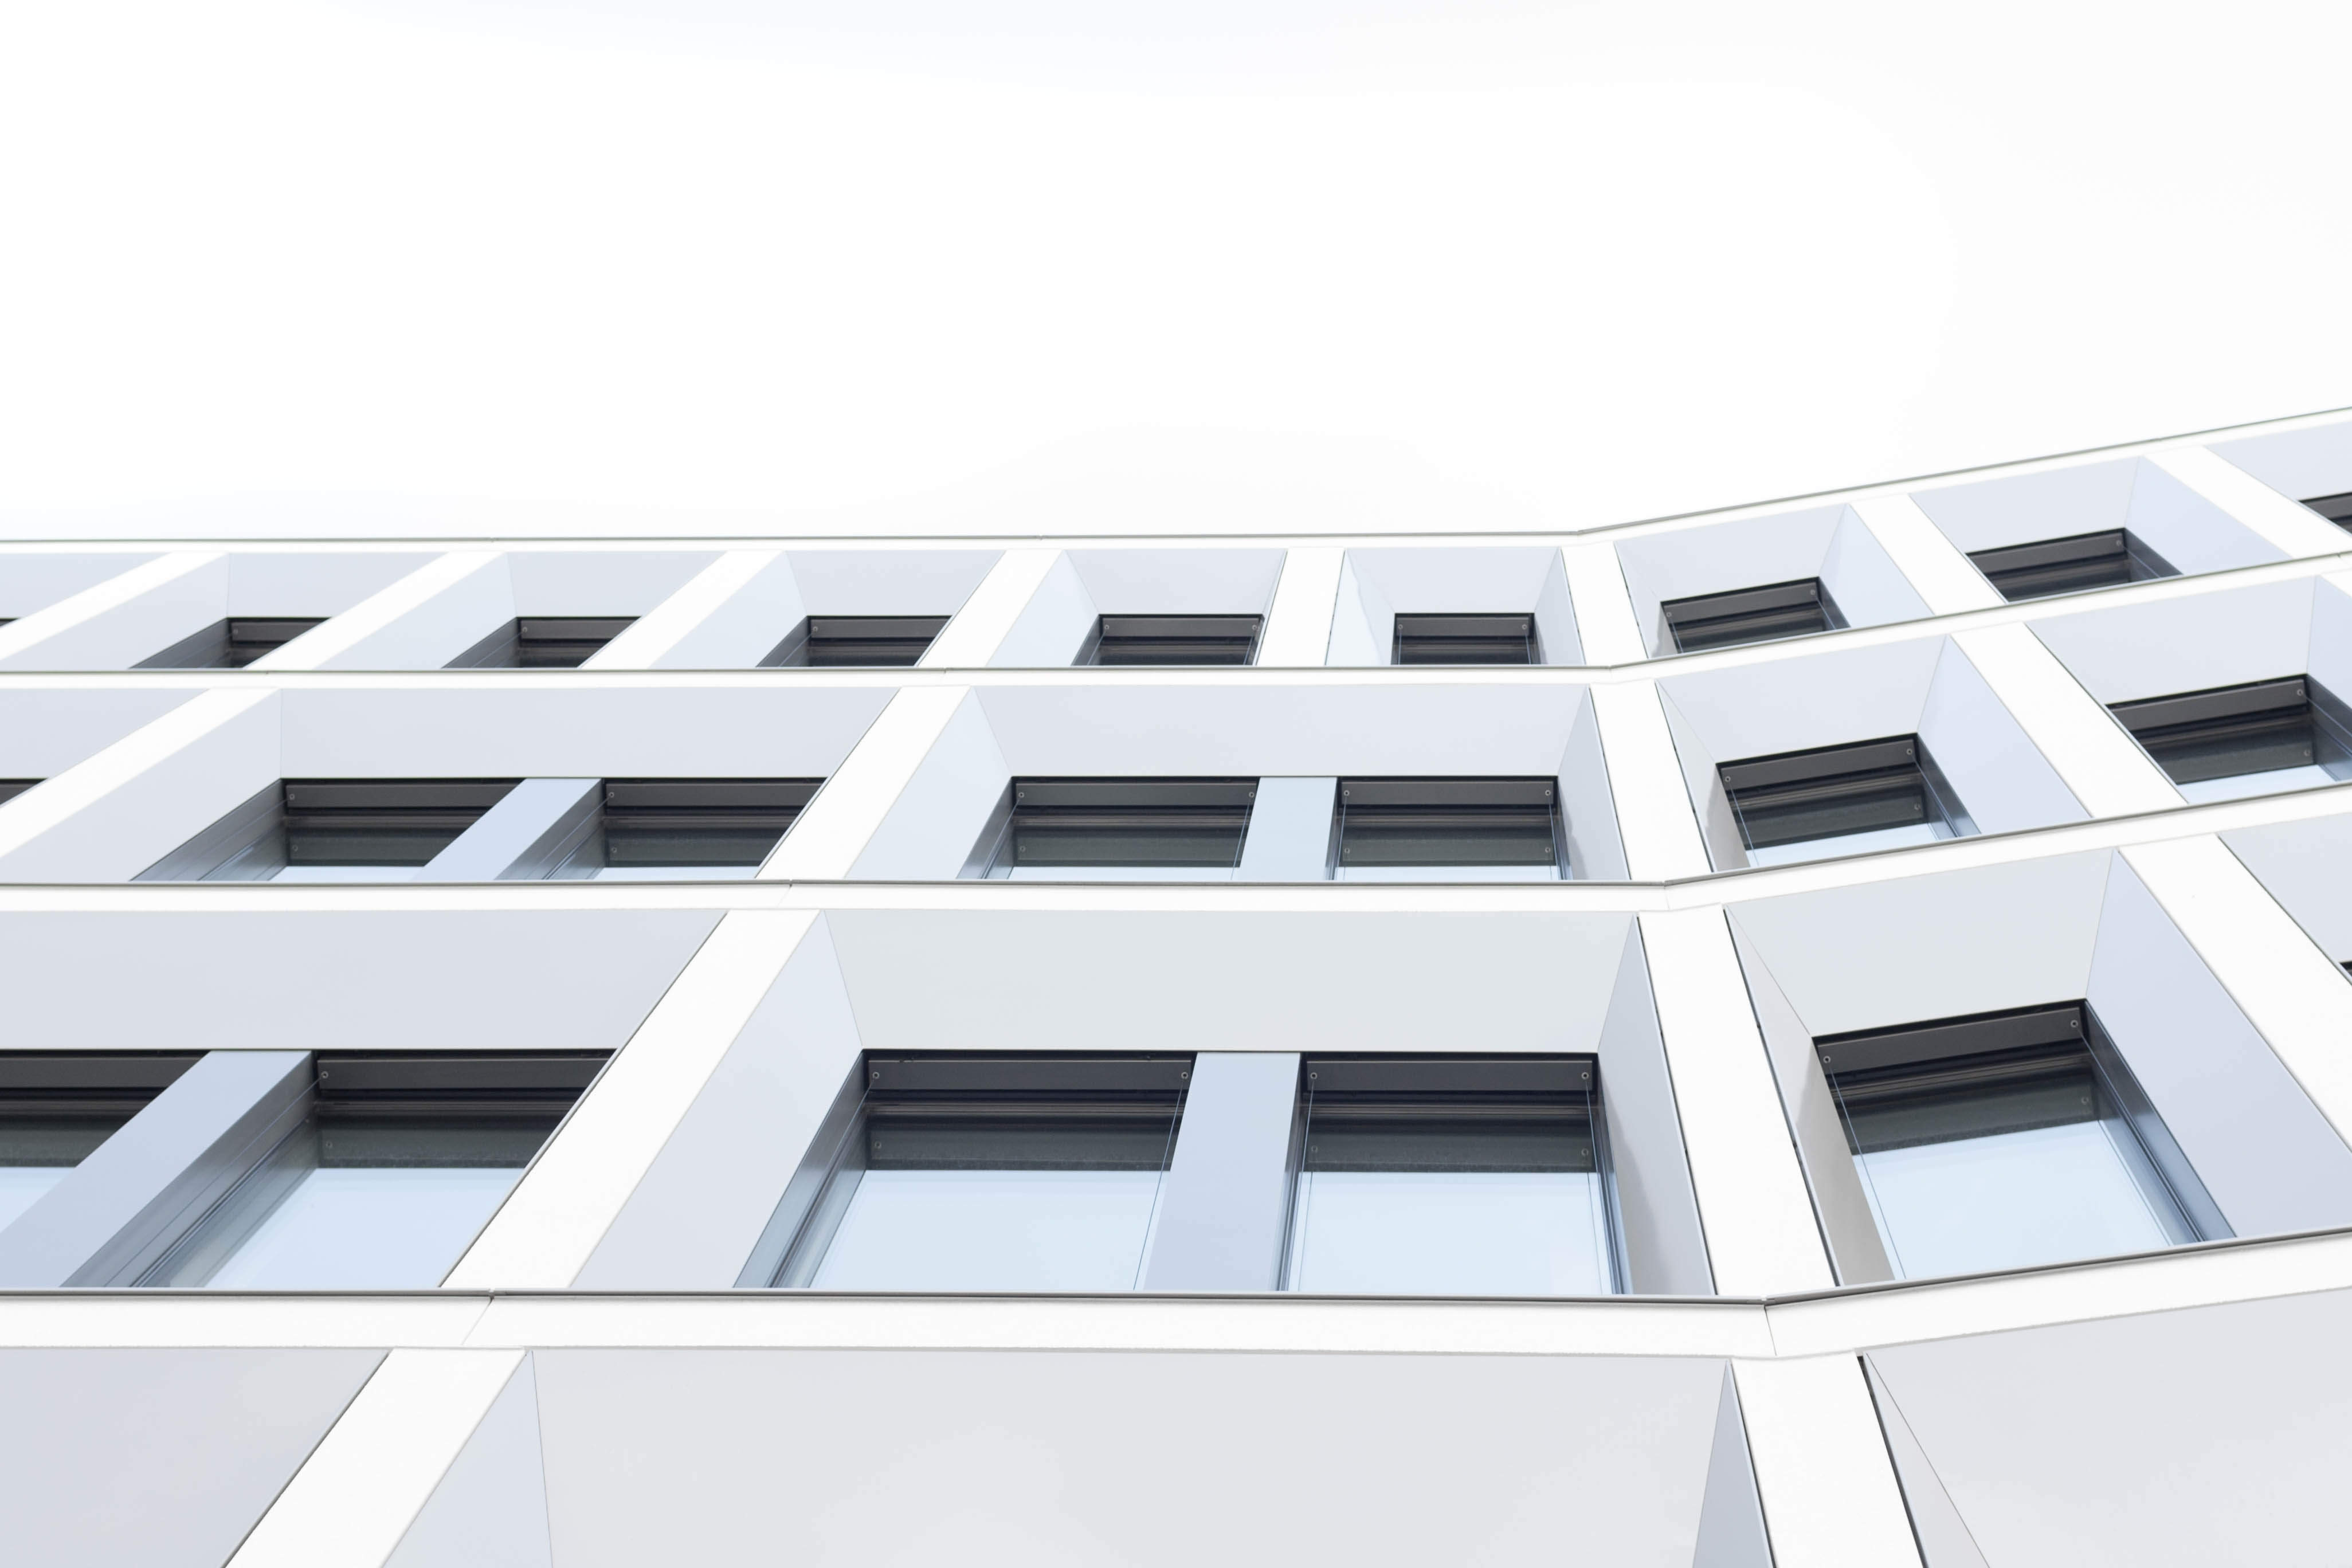 A number of windows in a white facade in Munich